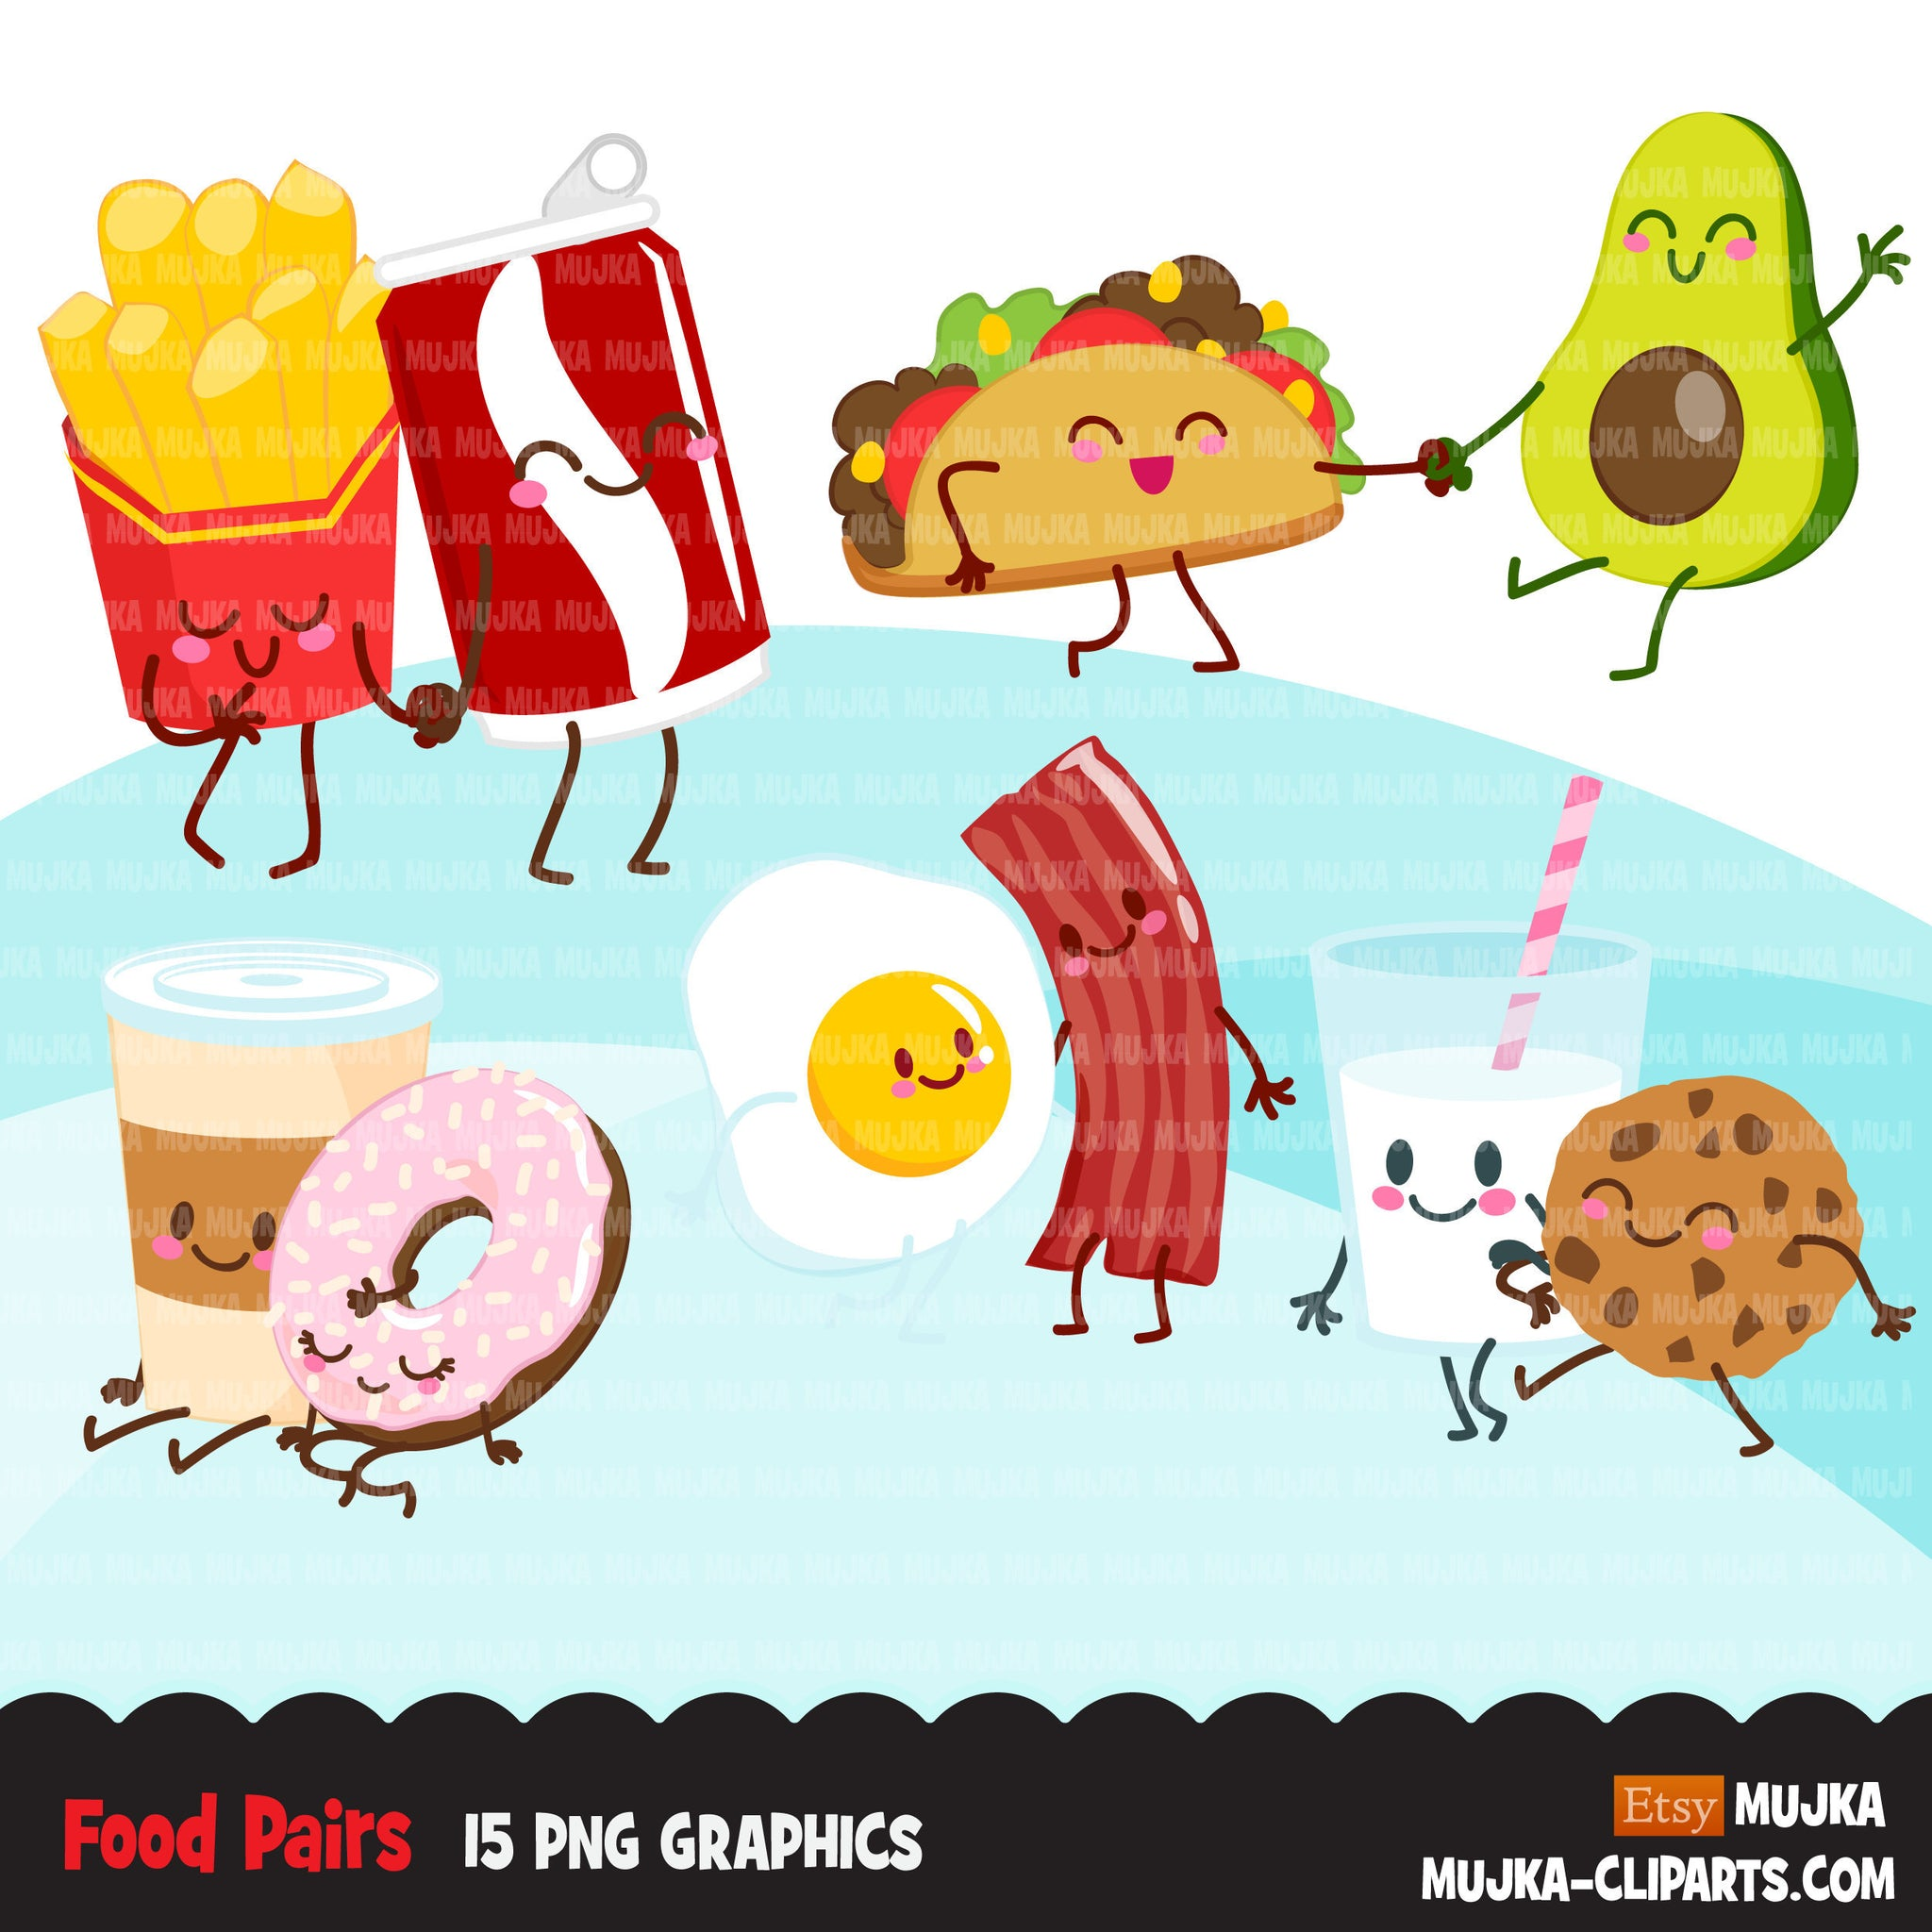 Food pairs clipart, Food couples, egg and bacon, milk and cookies Valentine's Day couples PNG clip art